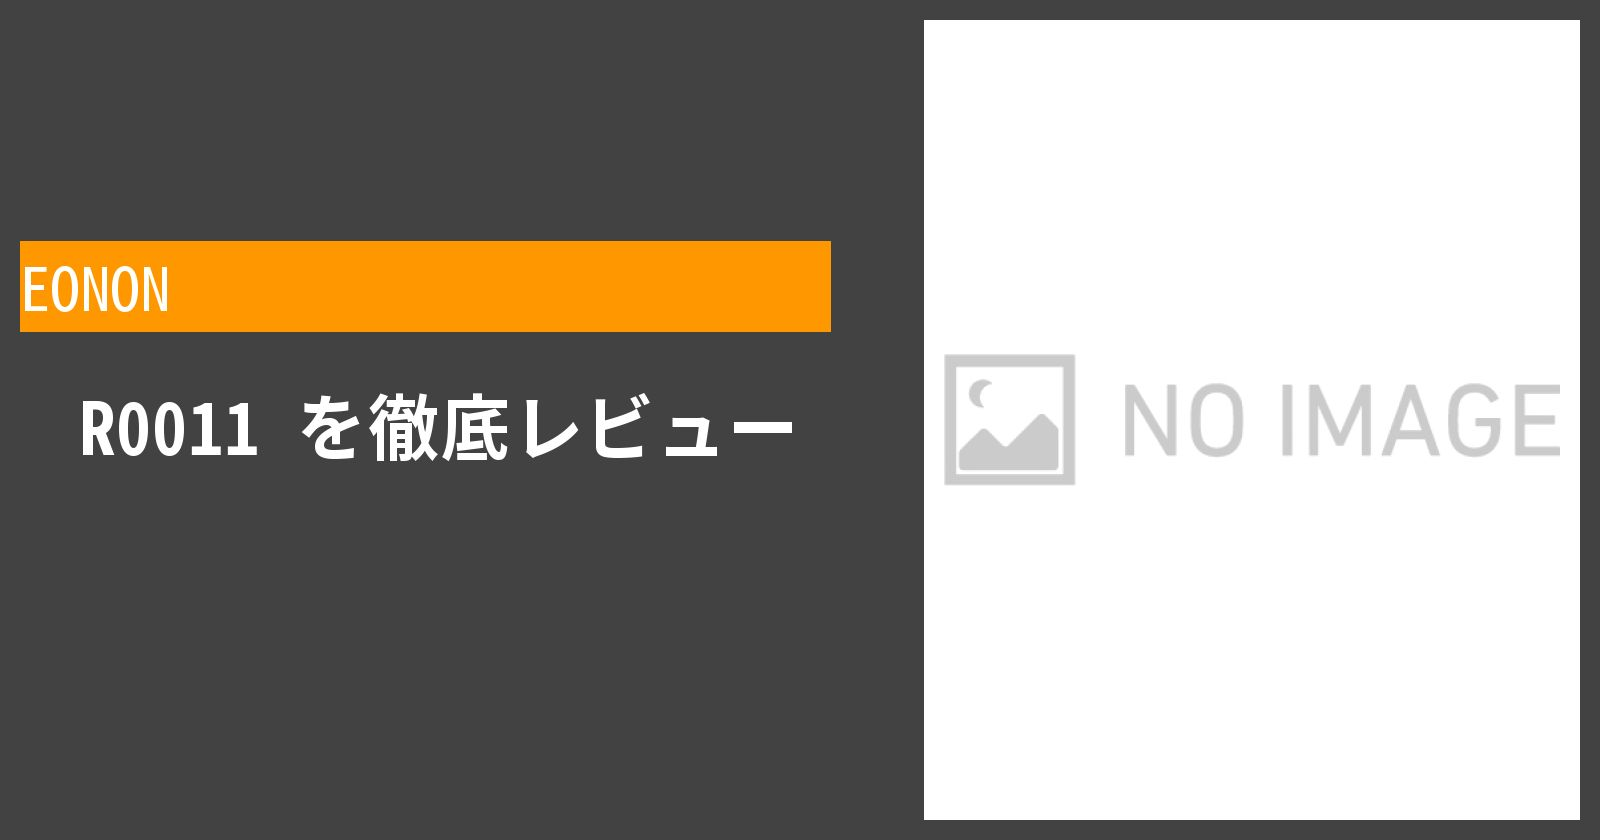 R0011を徹底評価